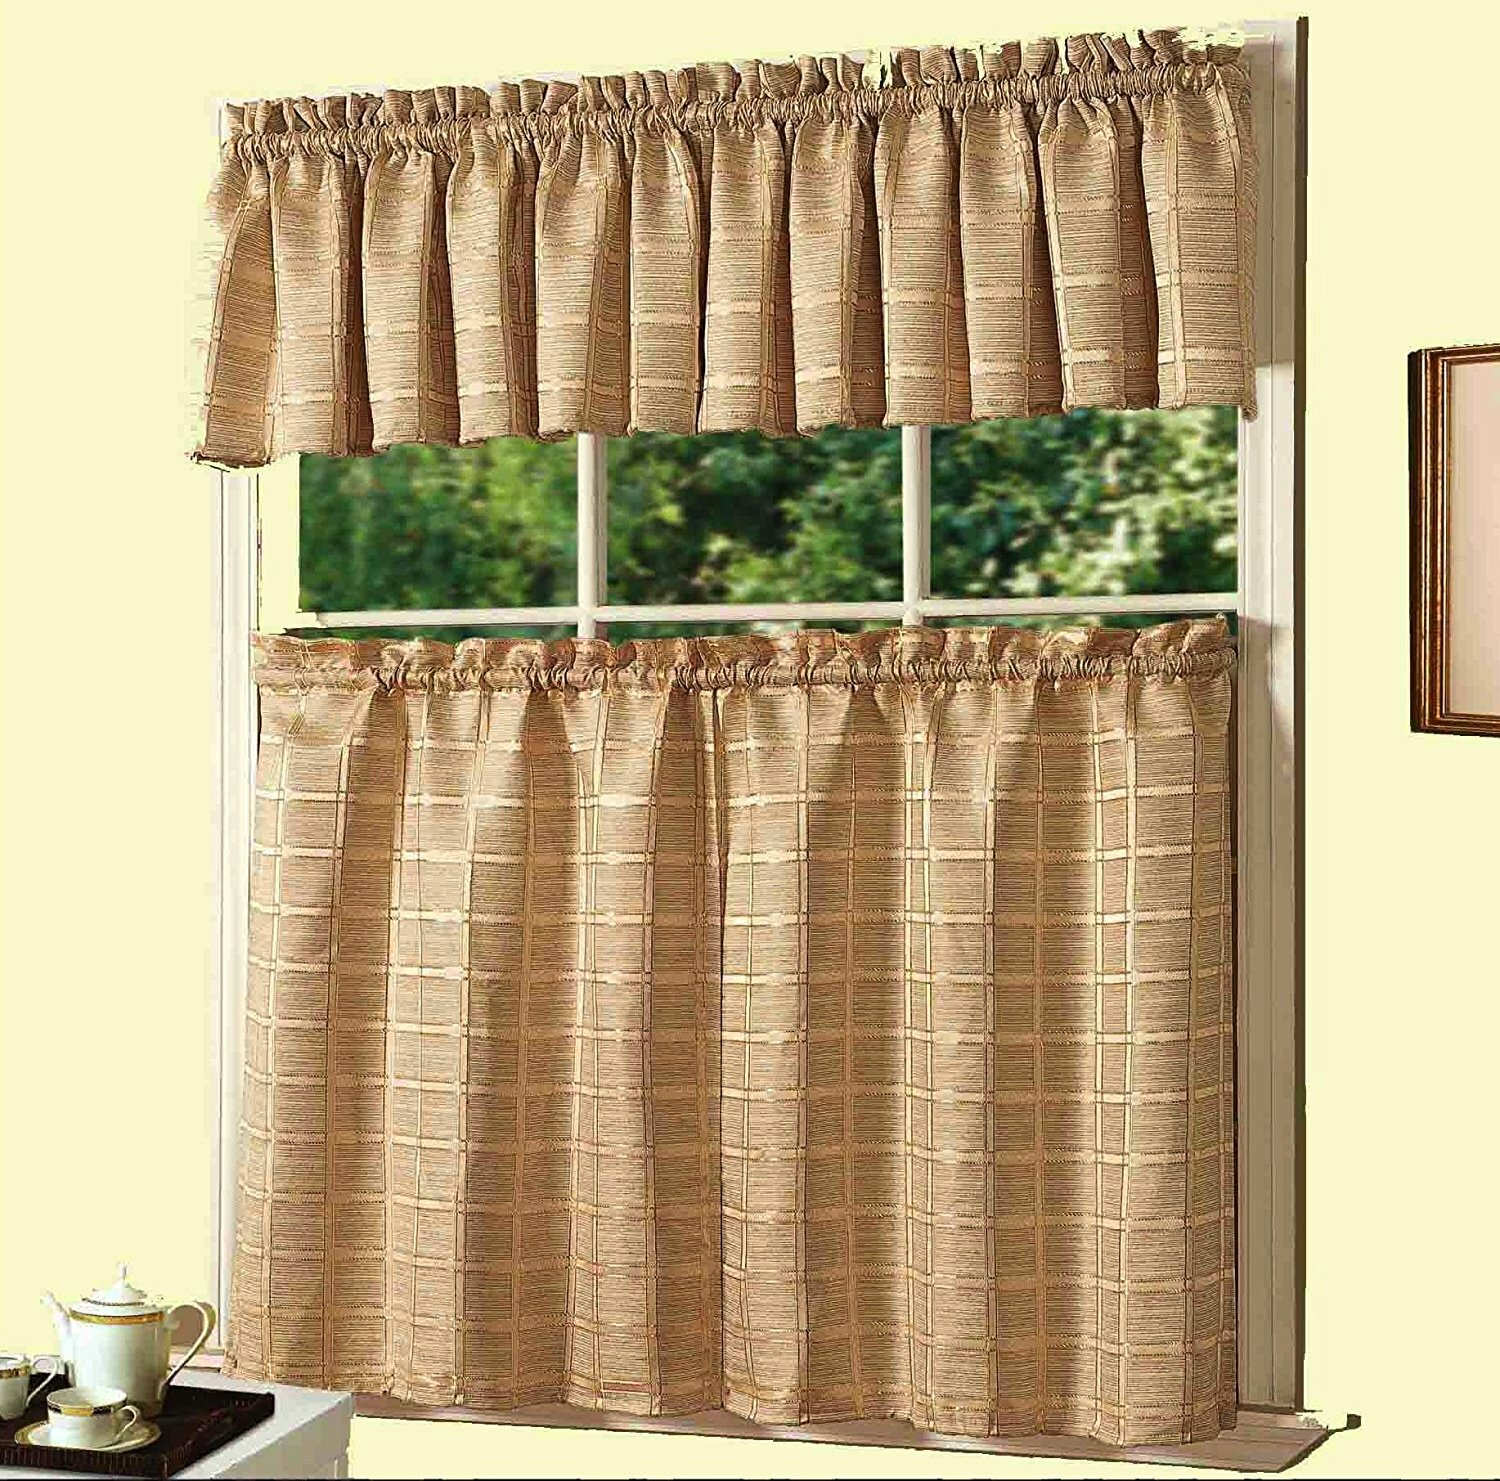 Halpin New 3 Piece Kitchen Curtain Set